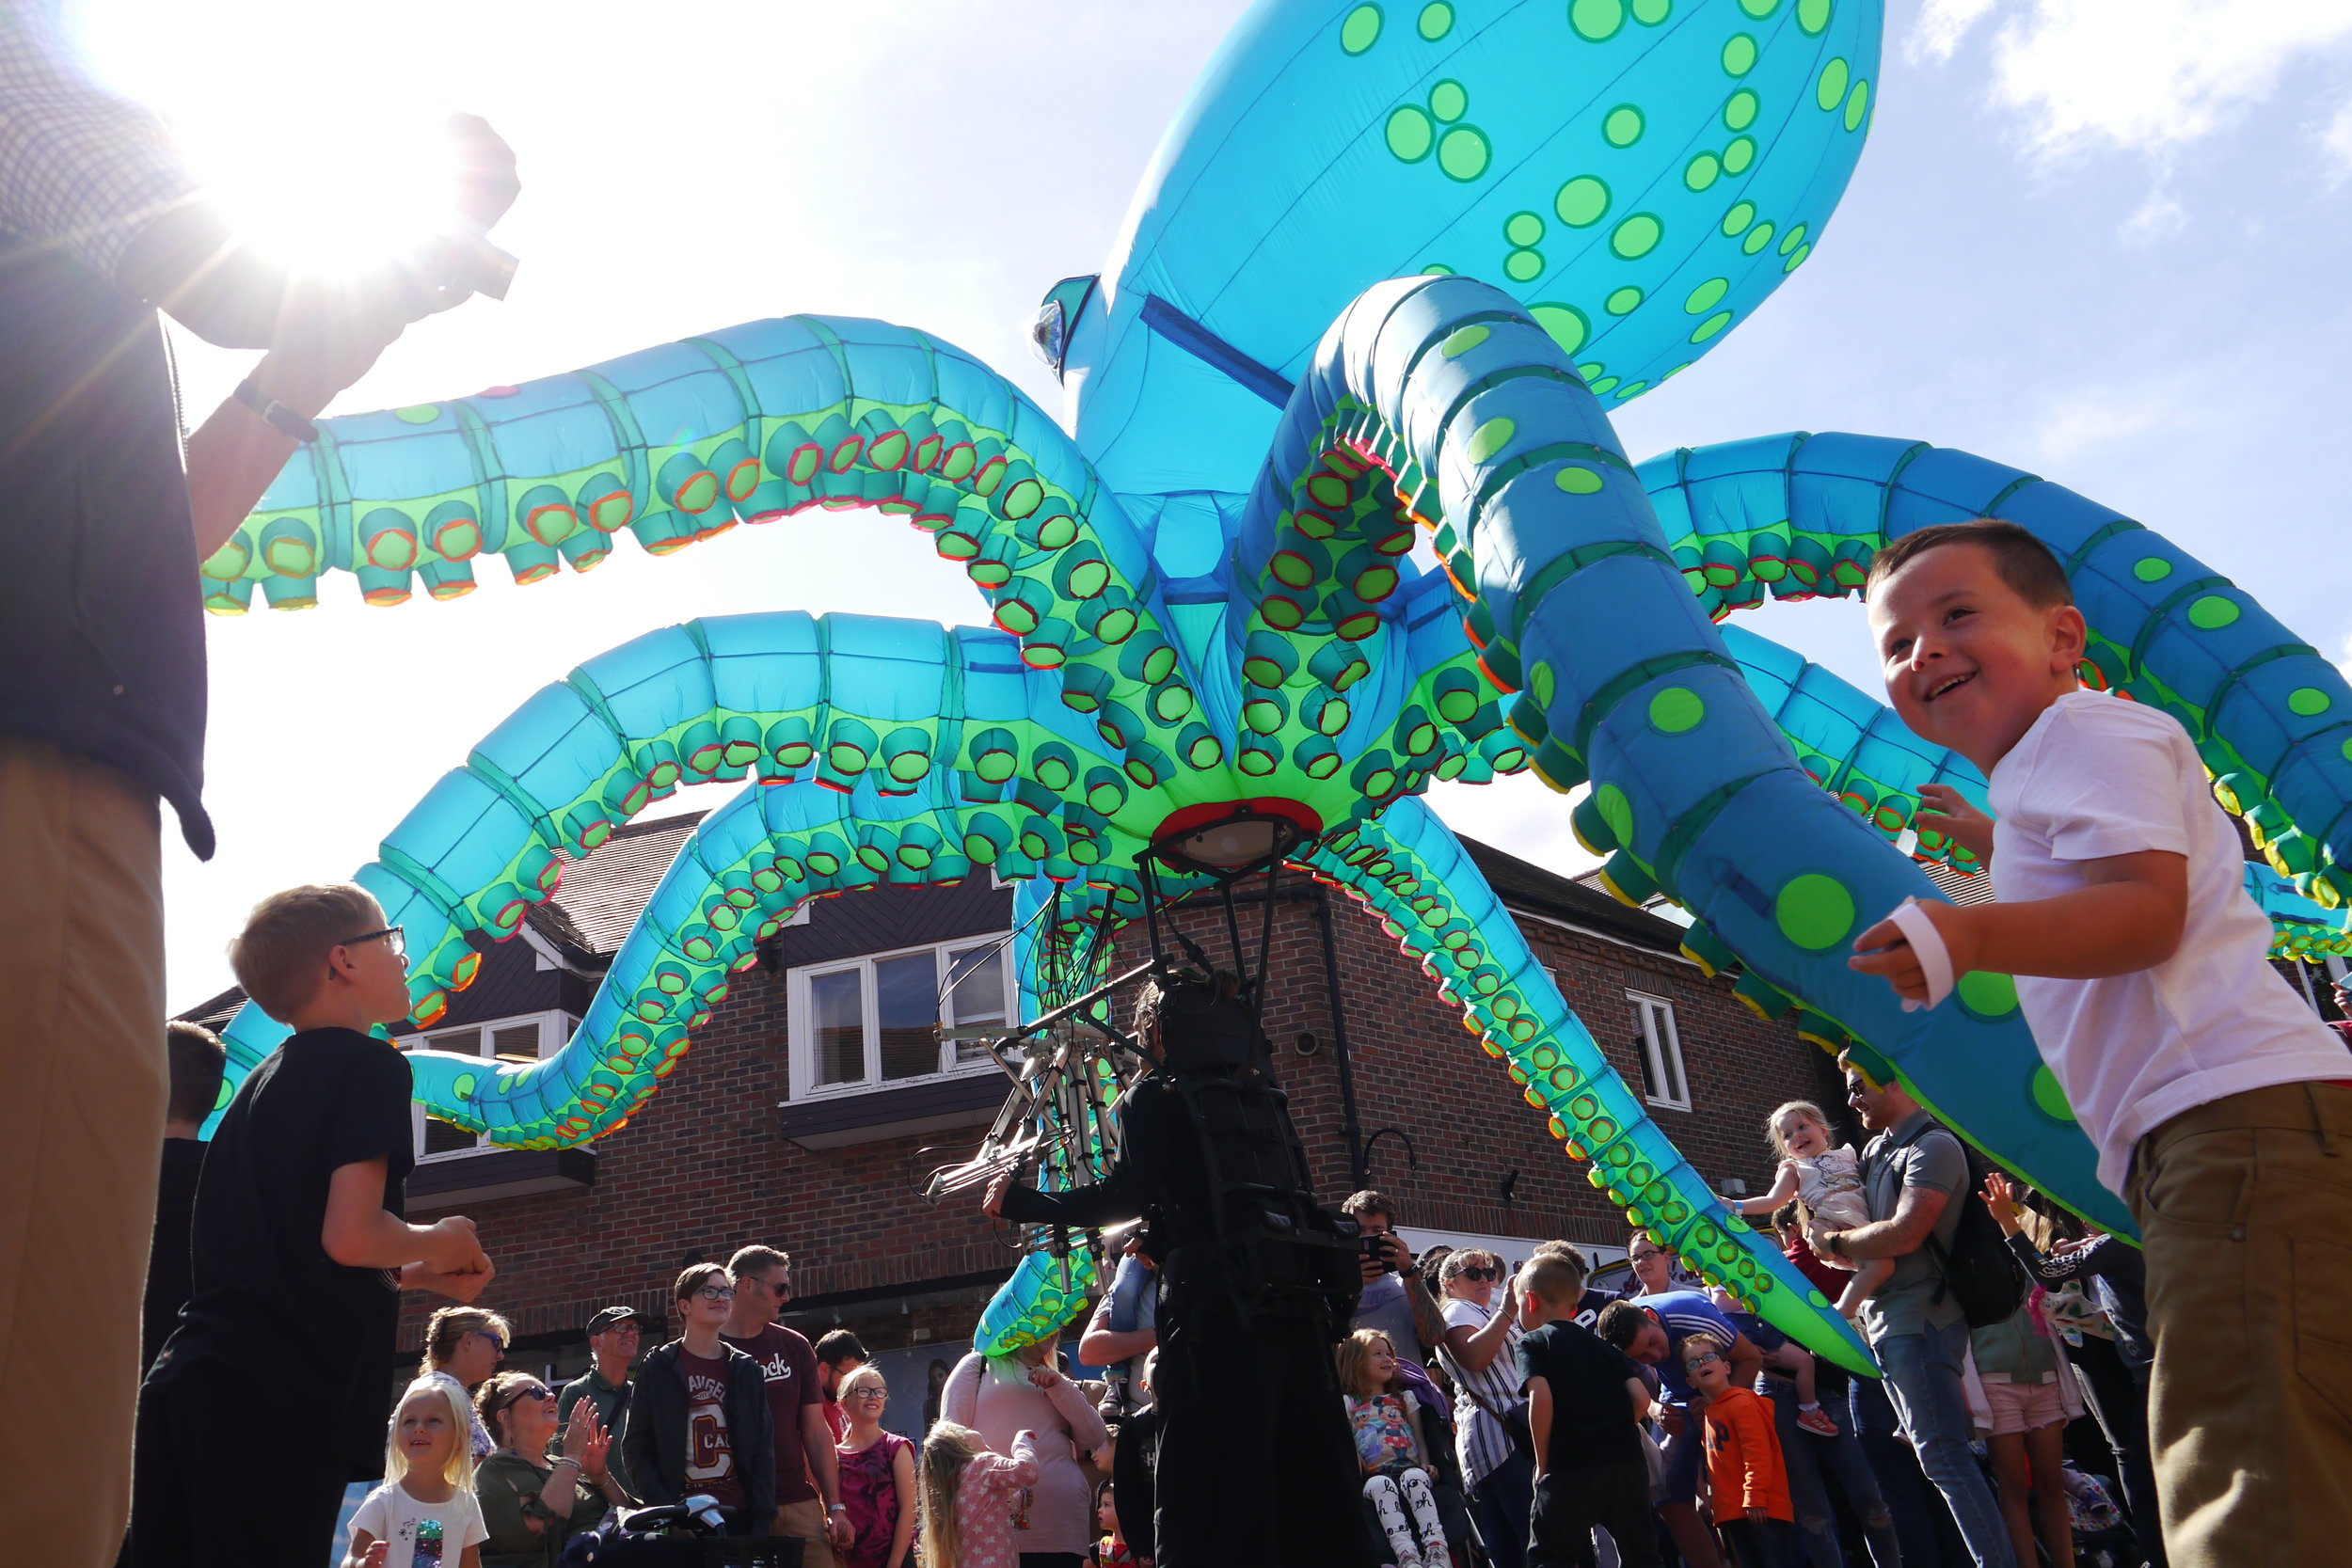 OchoTheOctopus performing in Witham